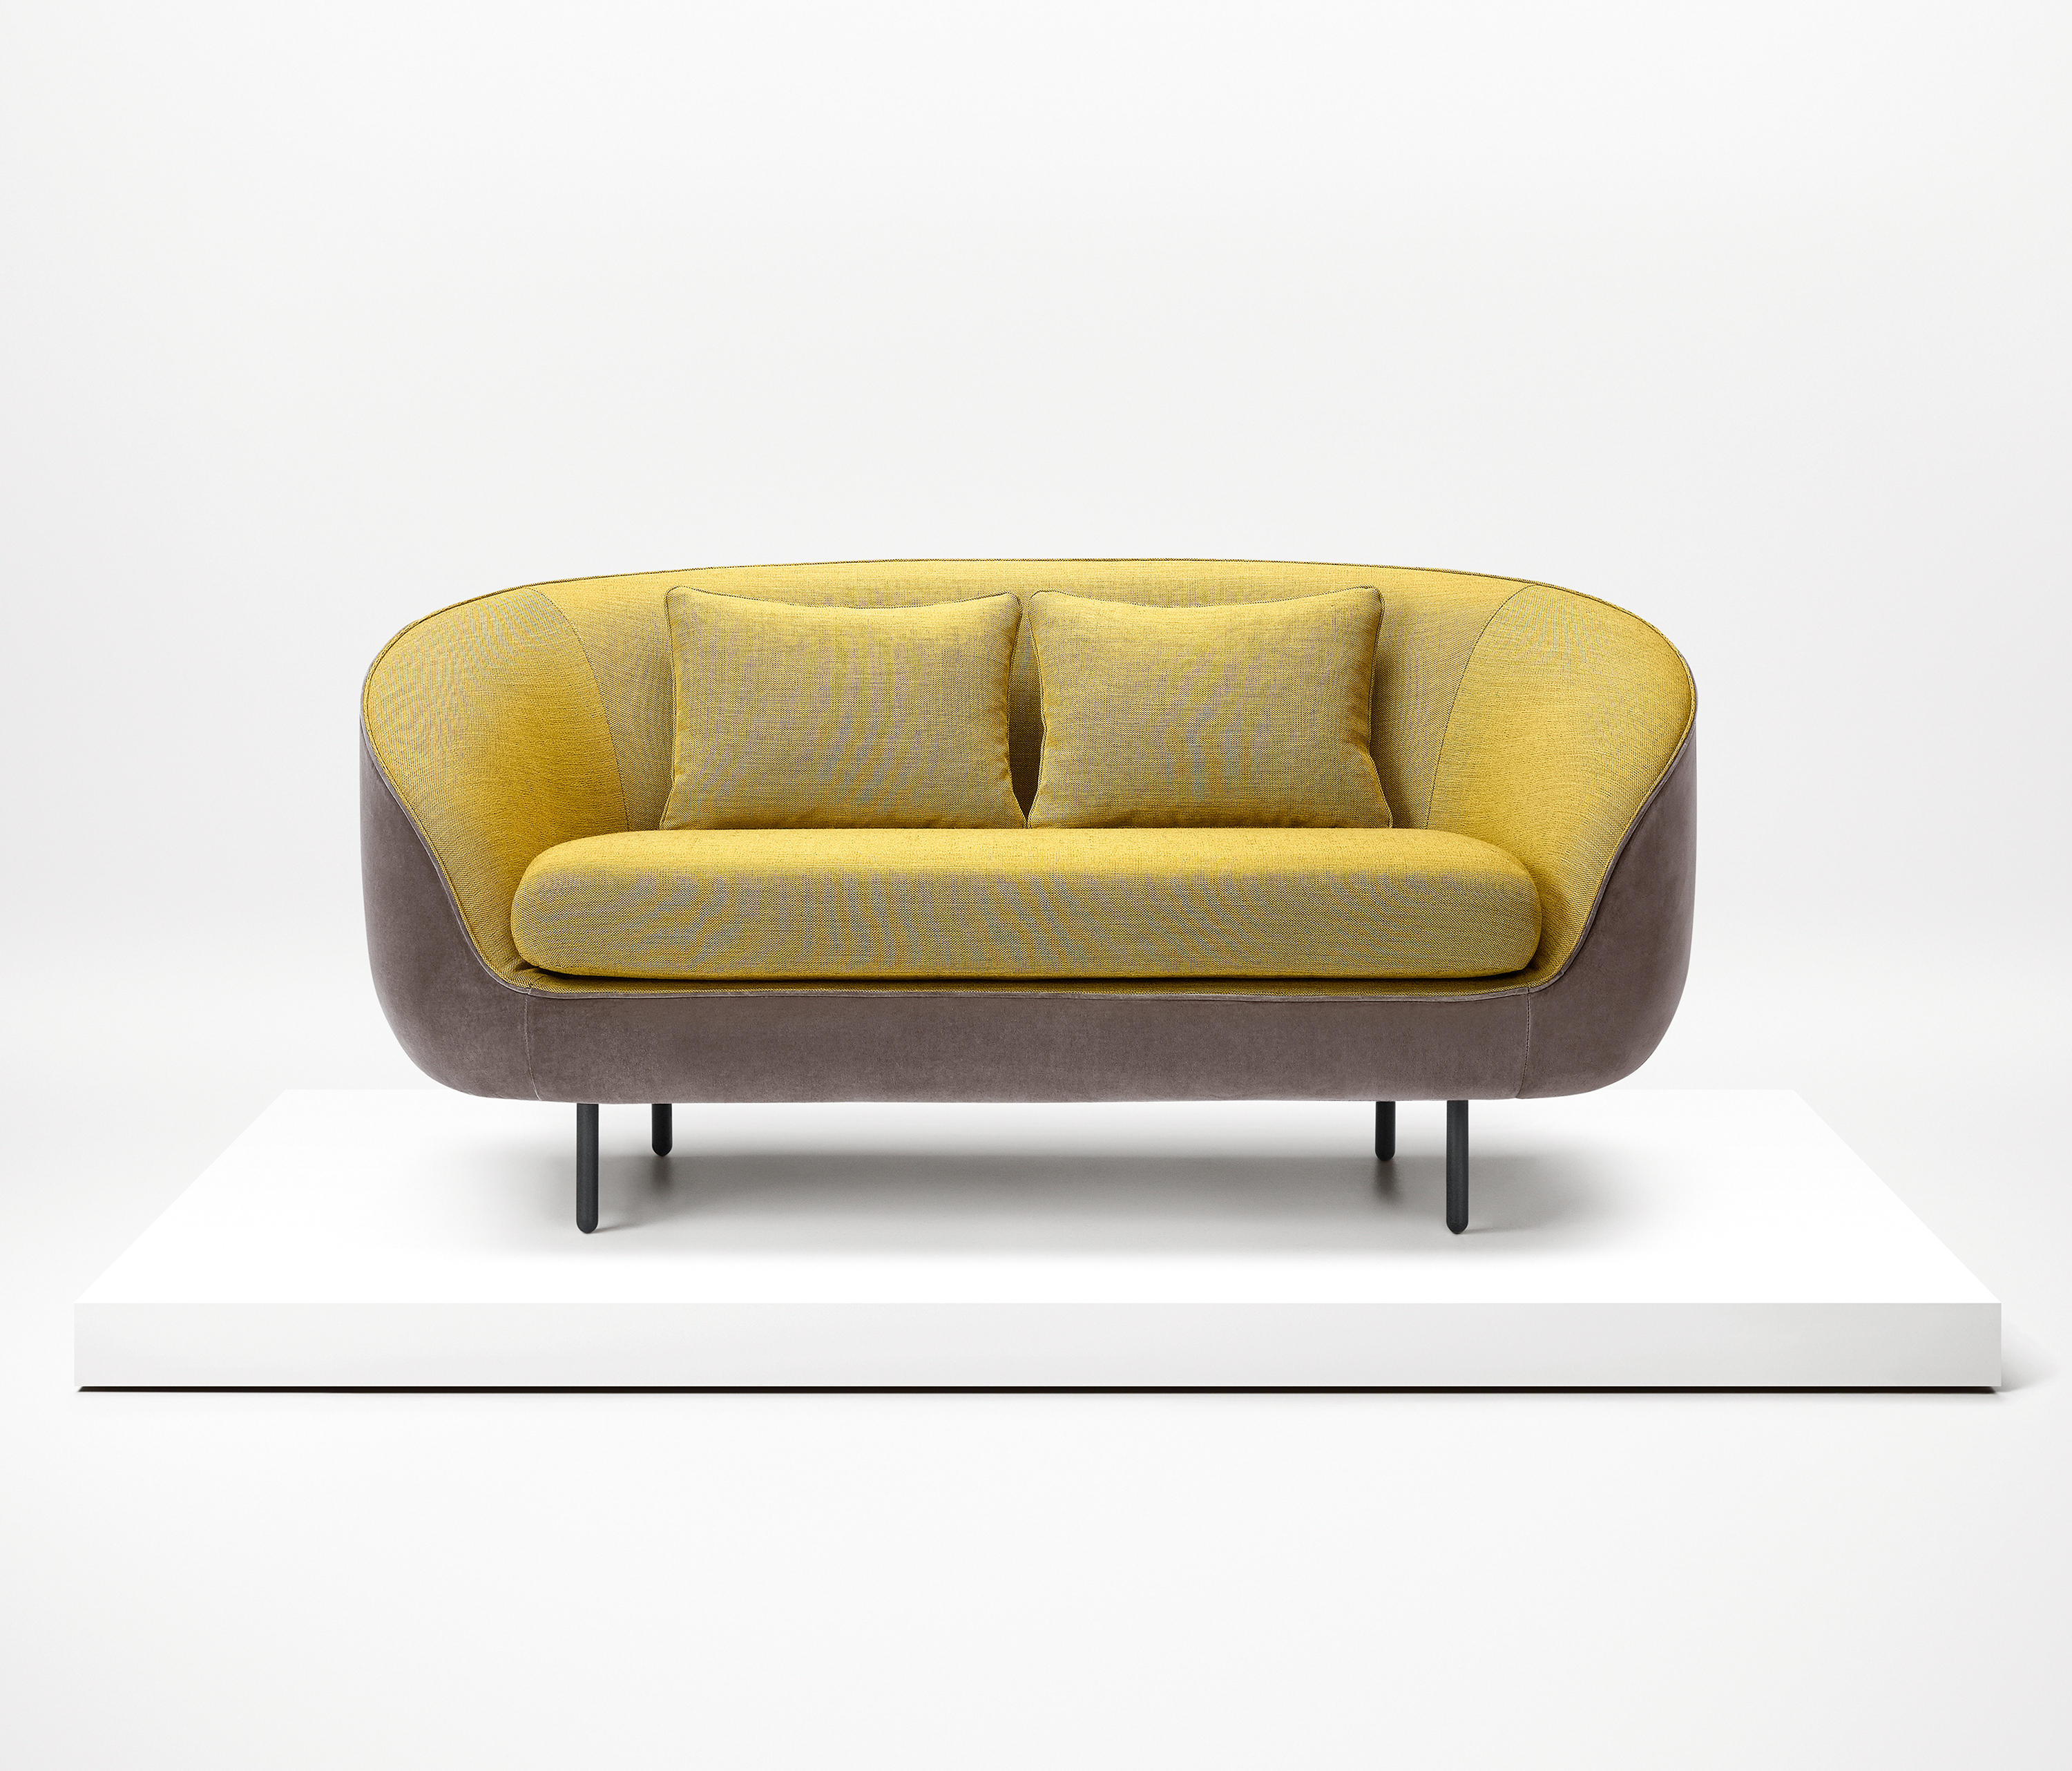 ... Haiku Low (3 Seater) By Fredericia Furniture